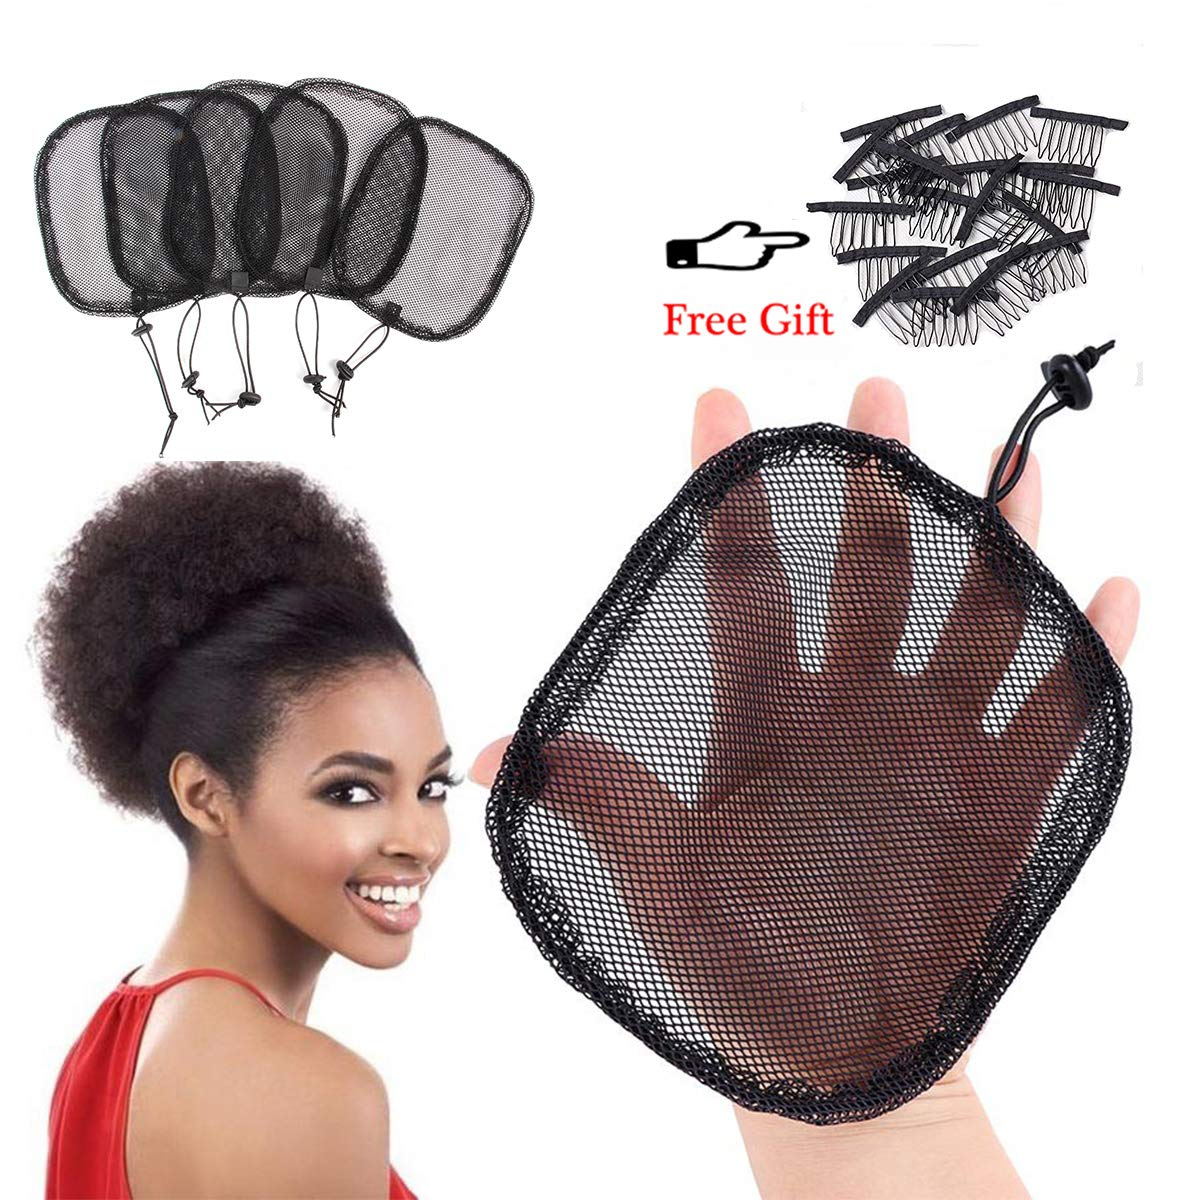 5Pcs/Lot Hair Net For Making Ponytail With Drawstring Black Weaving Wig Cap For Making Afro Hair Buns Stretchy Base For Making Ponytail Weaving Net Cap (Square: L=6.5 x 5.7 Inches) by YOUNIQUE